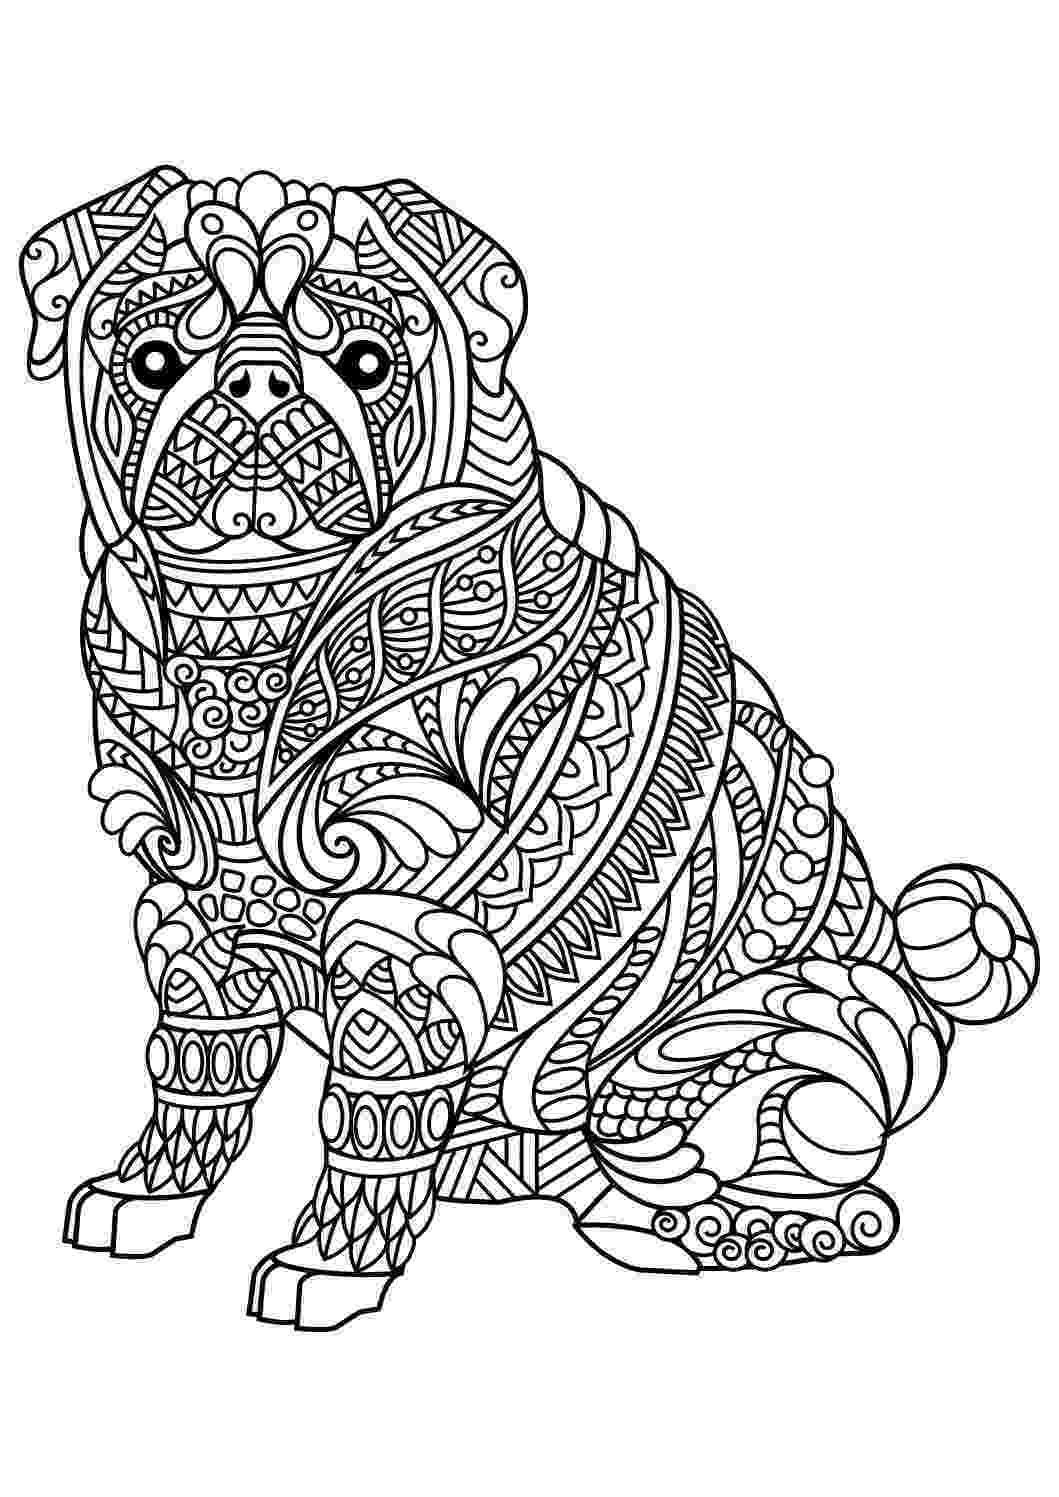 colouring pages for adults animals coloring pages adults colouring for animals pages